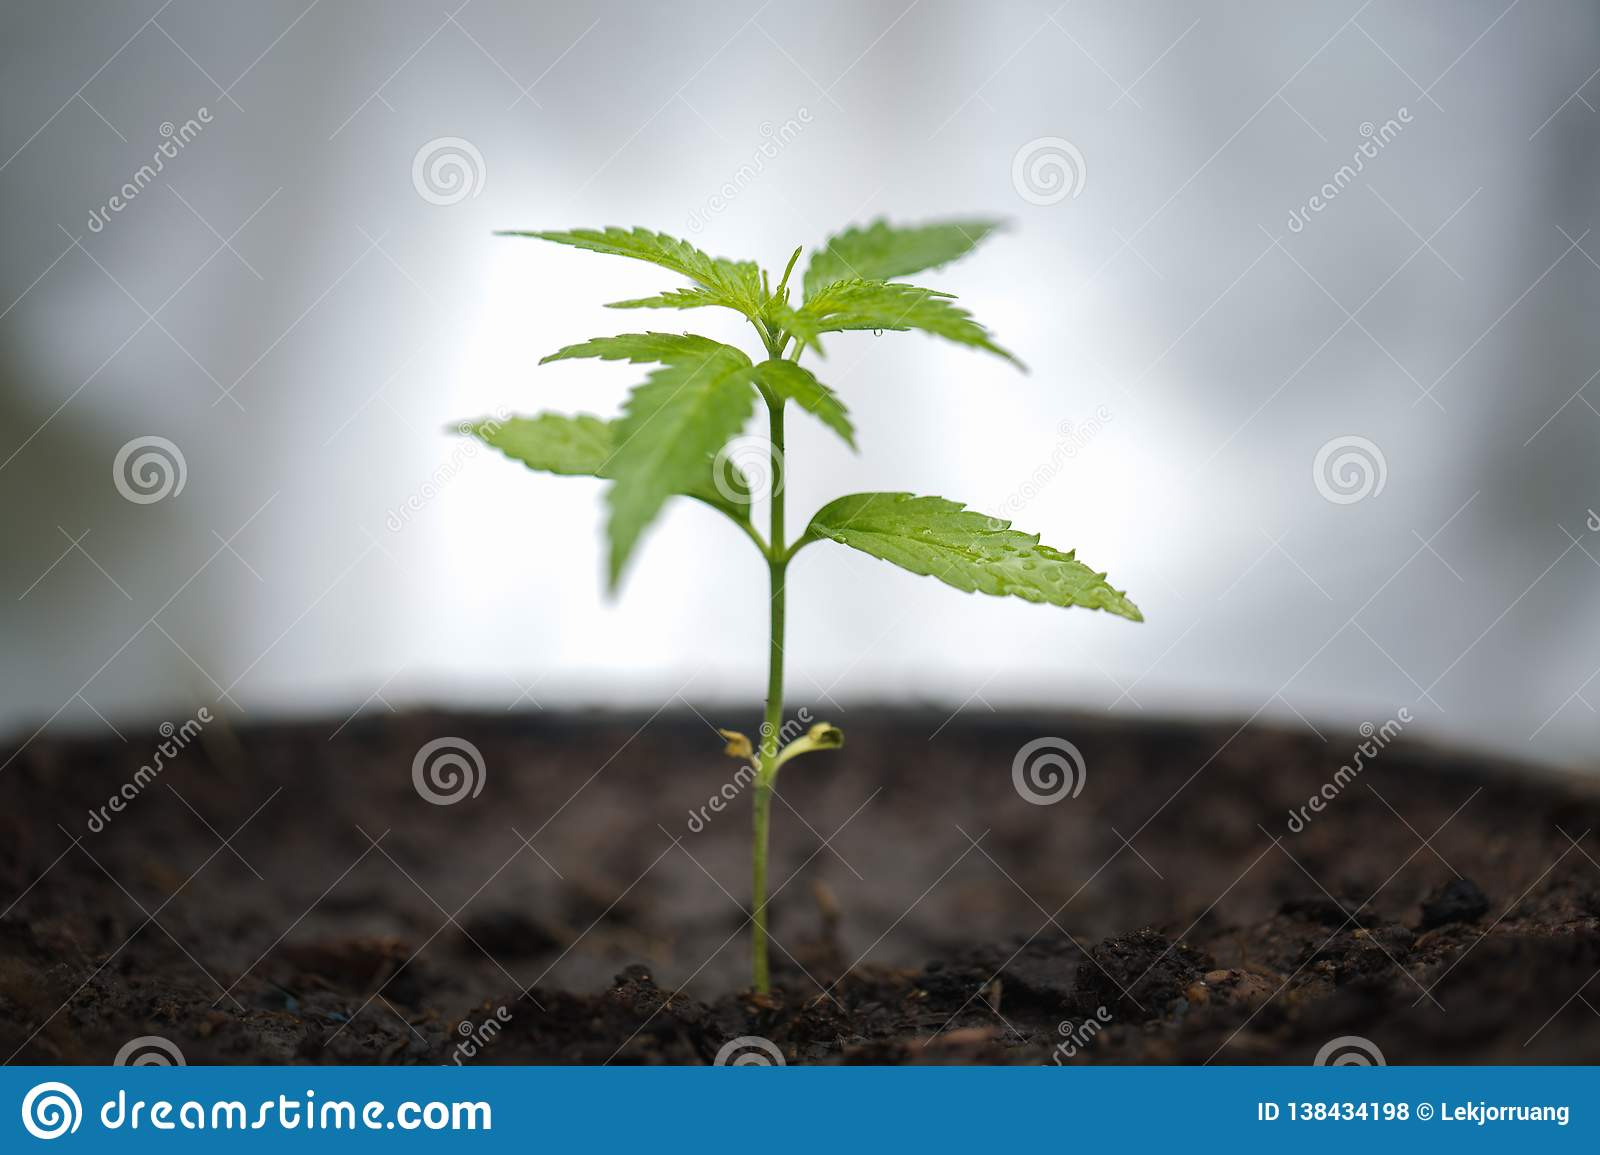 Seedling of cannabis, Growth of marijuana trees , Cannabis leaves of a plant on a dark background, medicinal agricultur